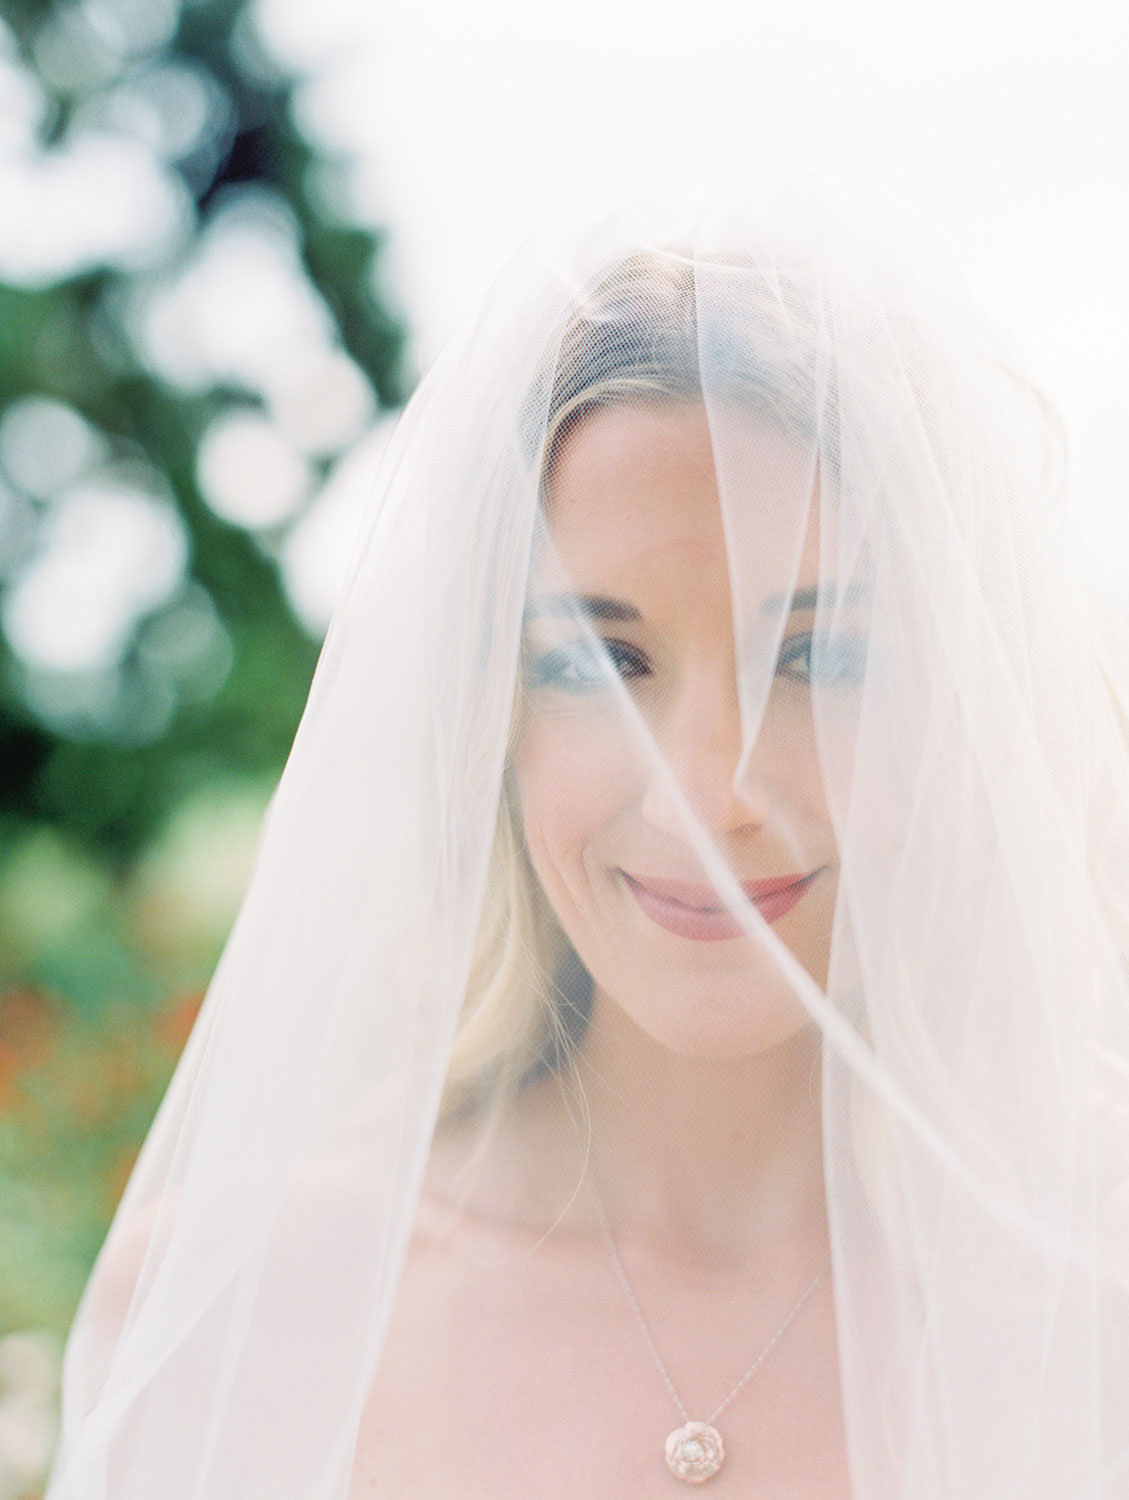 Bride under her veil, fine art bridal portrait, Lodge at Torrey Pines wedding, film photography by Cavin Elizabeth Photography